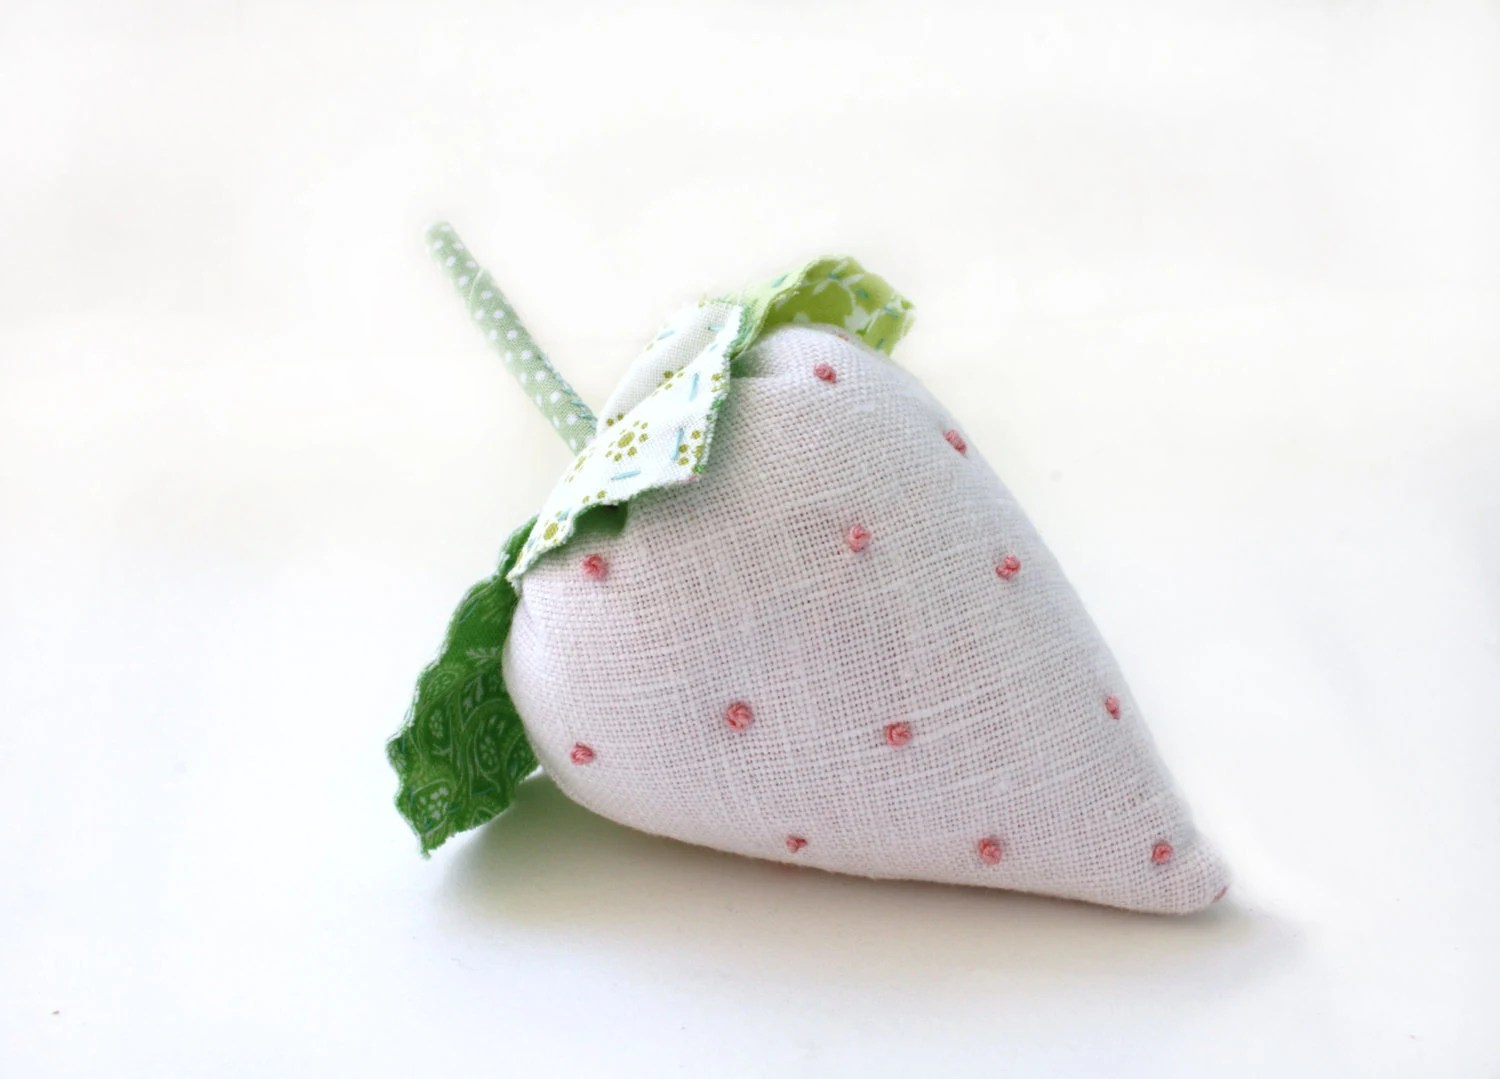 Pincushion, Supply, Sewing, Craft, White, Linen, Strawberry, Crushed Walnut Shell Filling, READY TO SHIP - AppleWhite